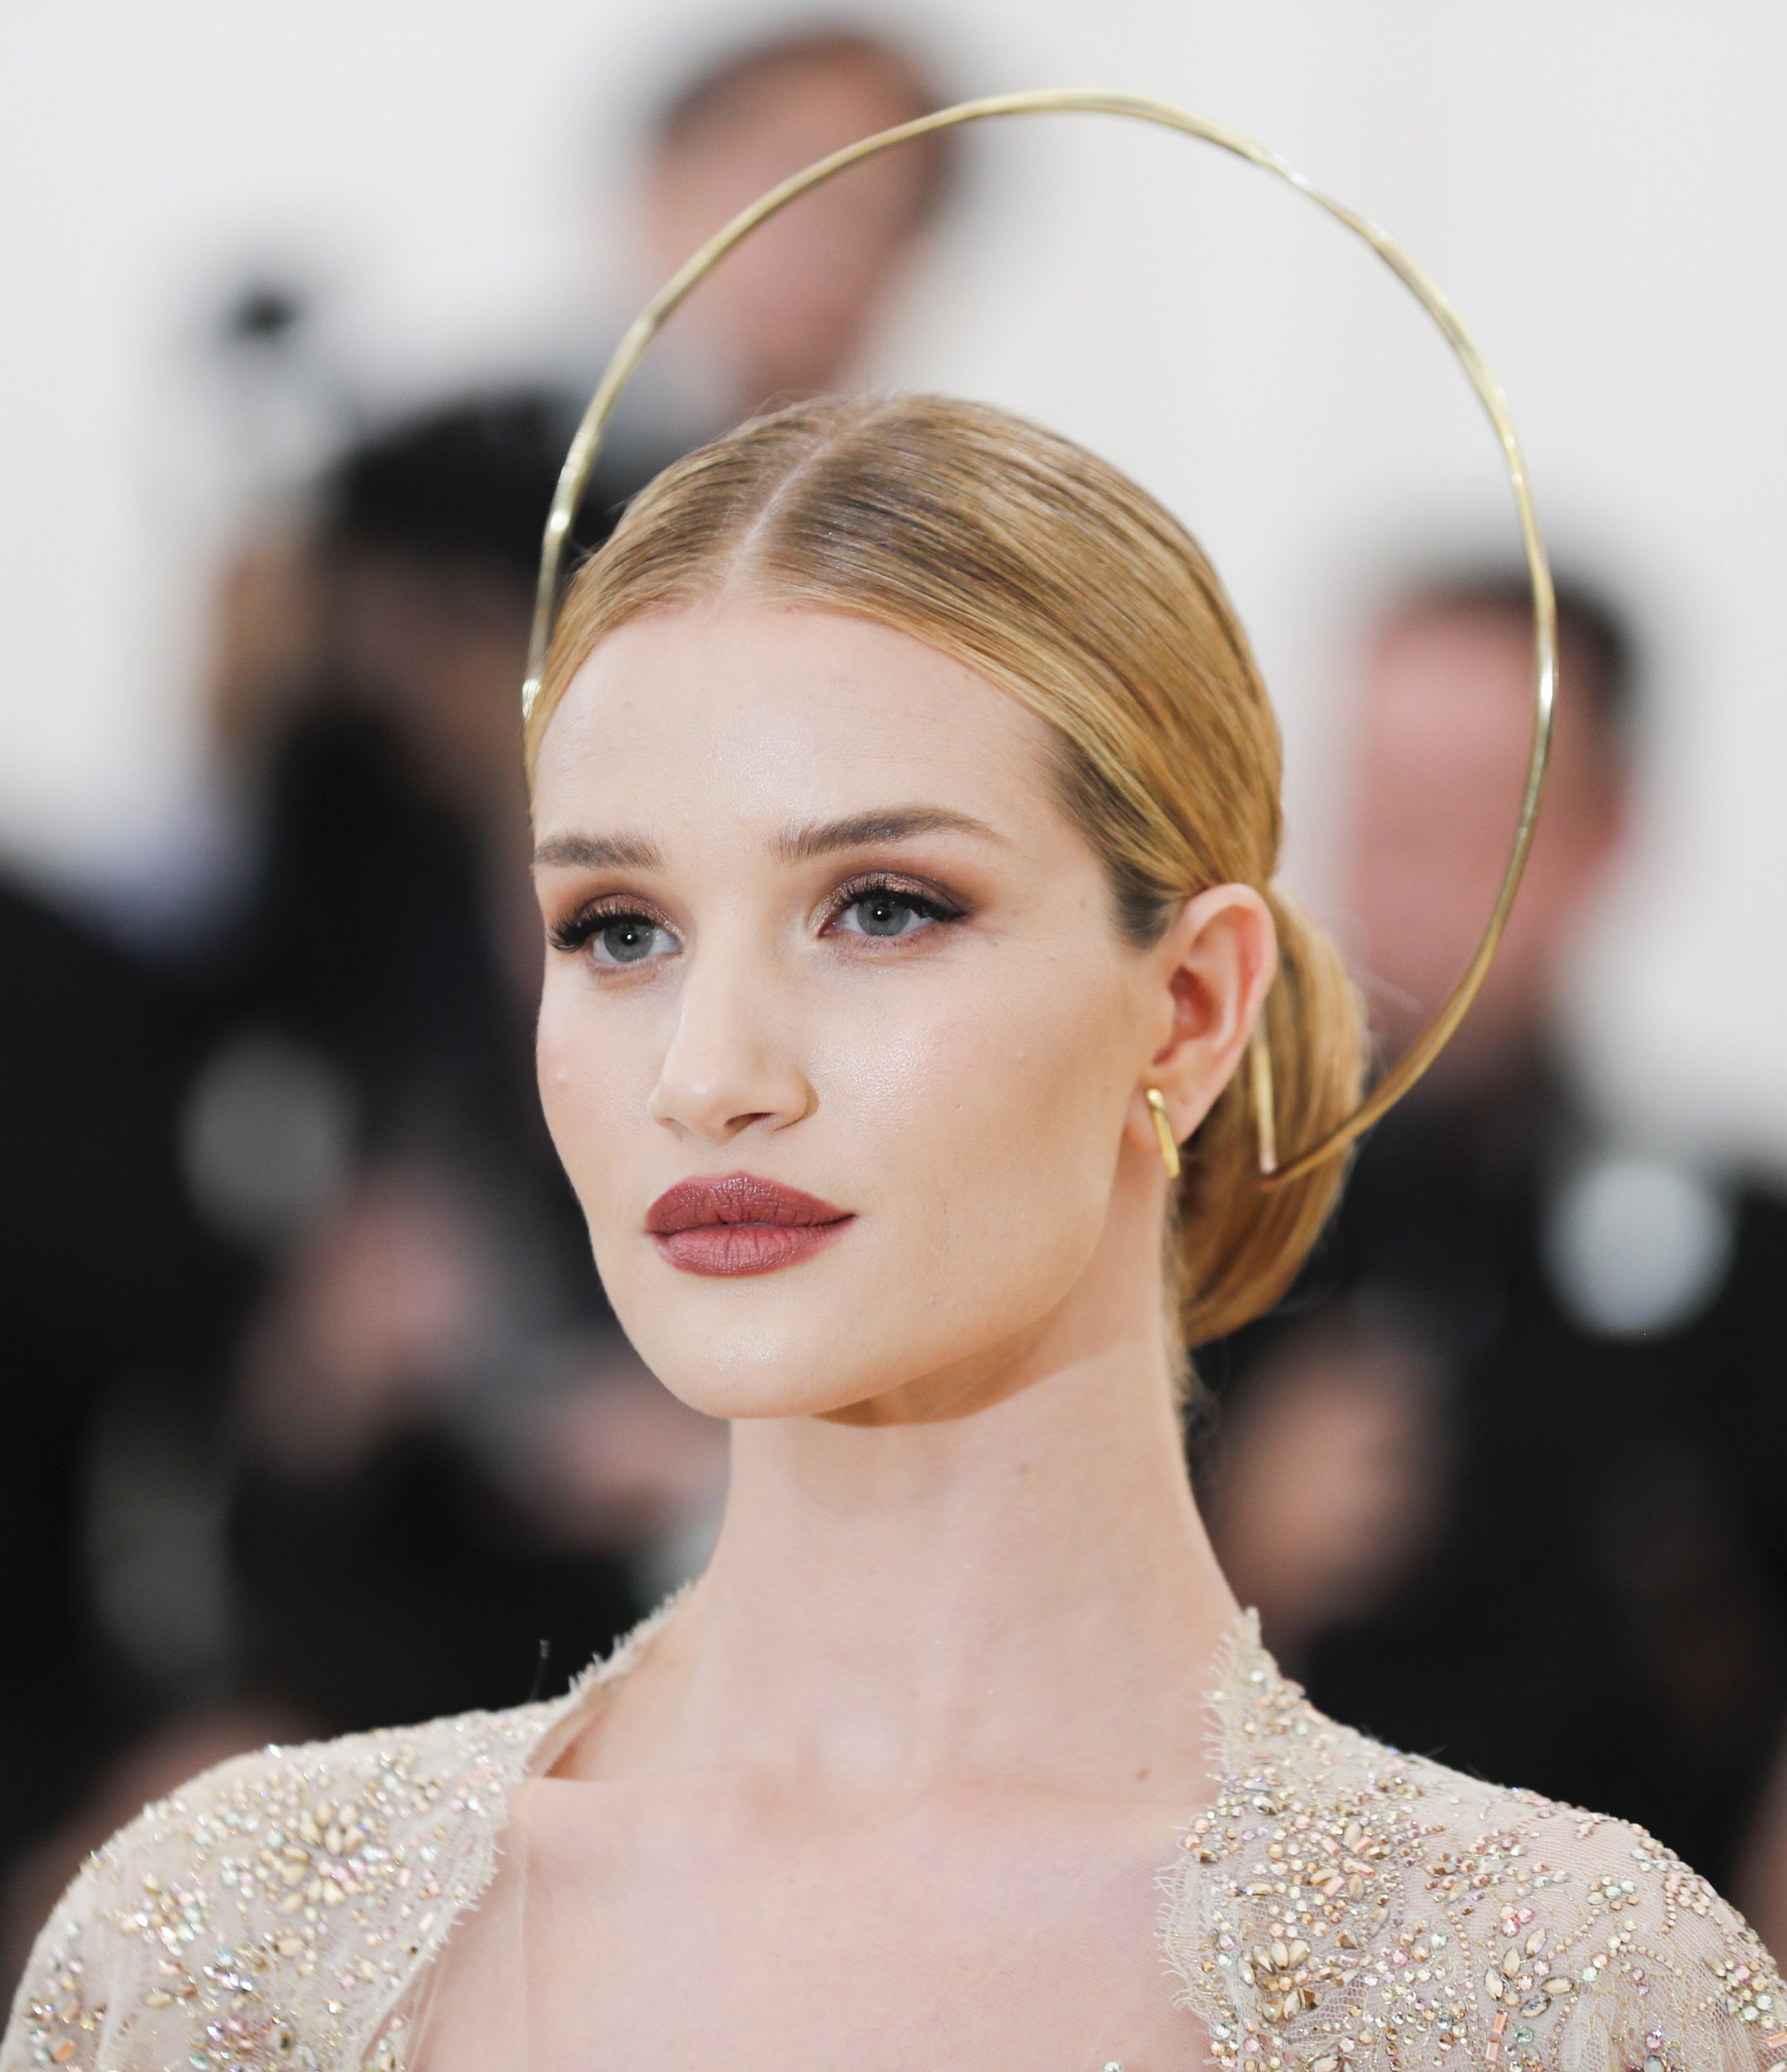 Rosie Huntington Whiteley wore an actual halo to the Met Gala because she's an angel